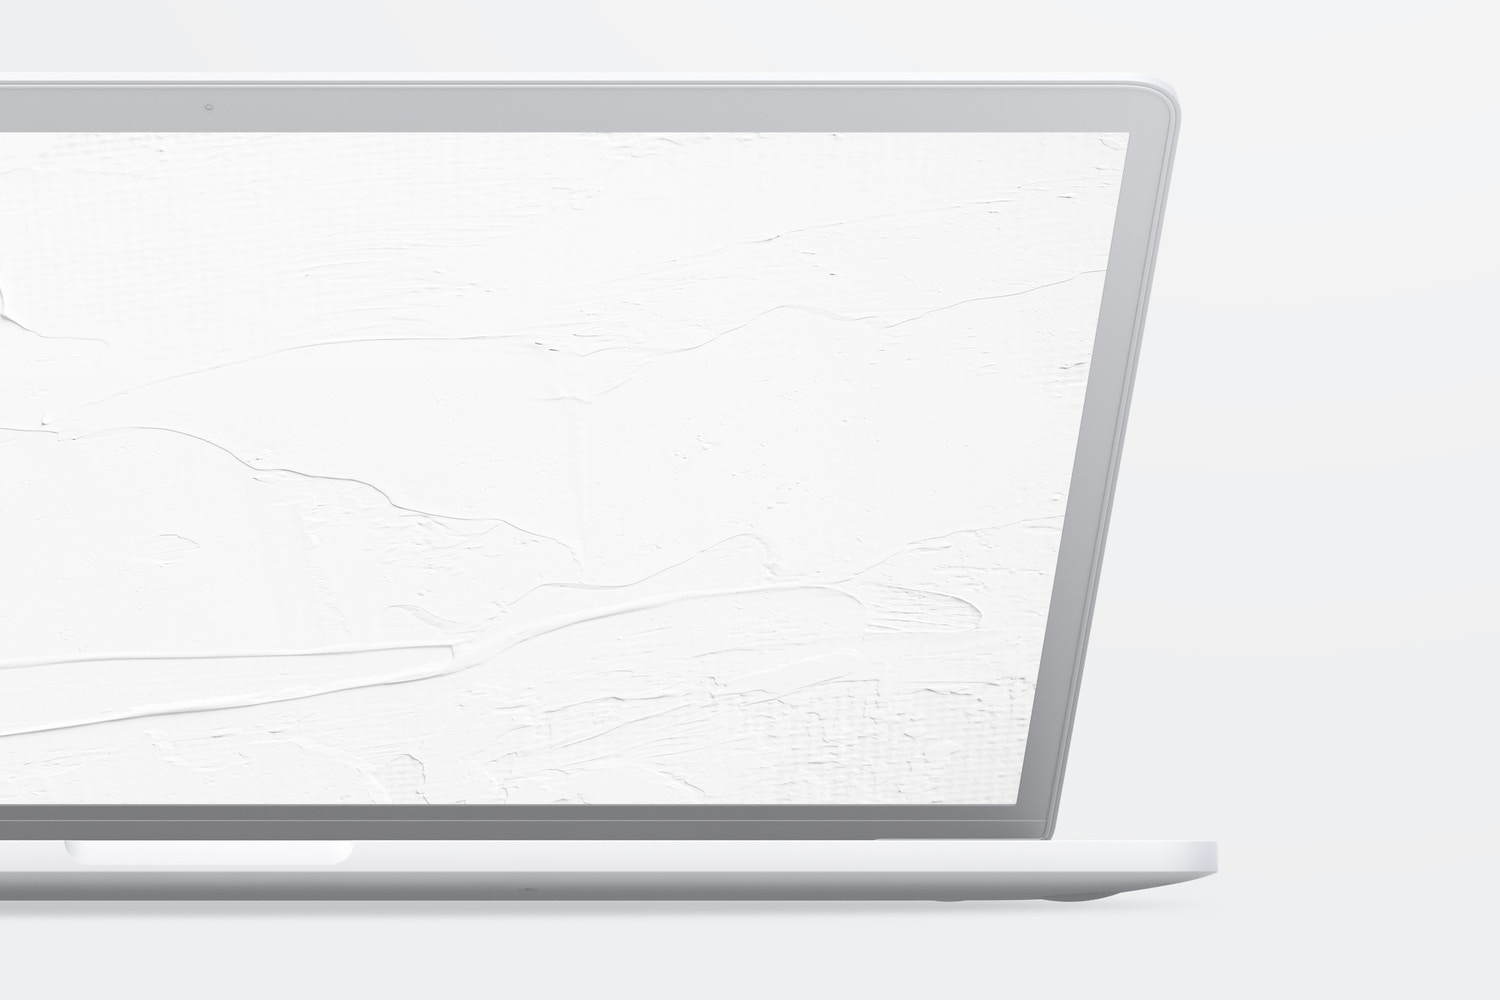 """Clay MacBook Pro 15"""" with Touch Bar, Front View Mockup 02"""